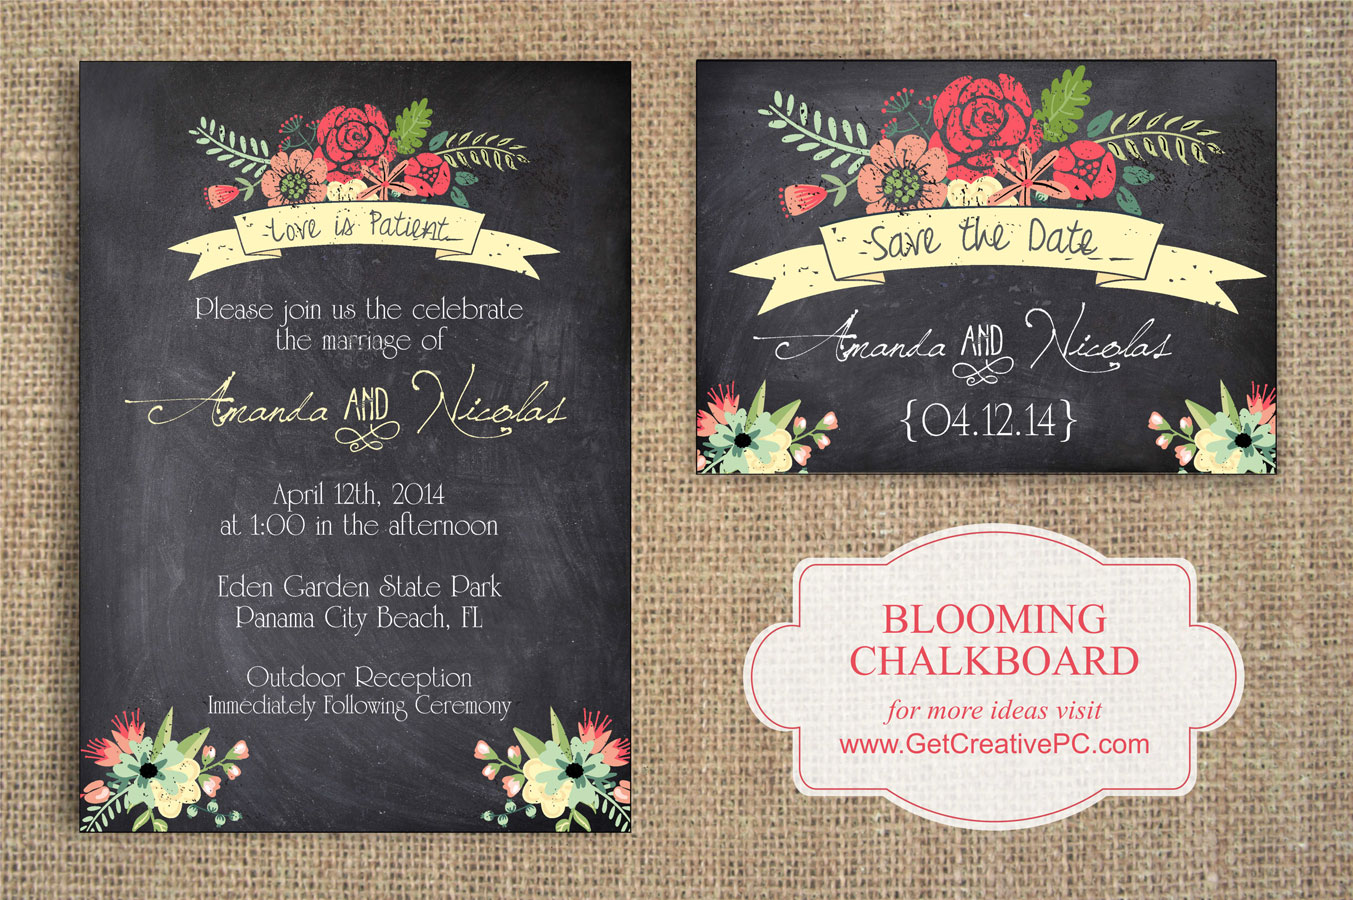 Wedding Invitations Blooming Chalkboard Creative Printing Of Bay County Panama City Florida